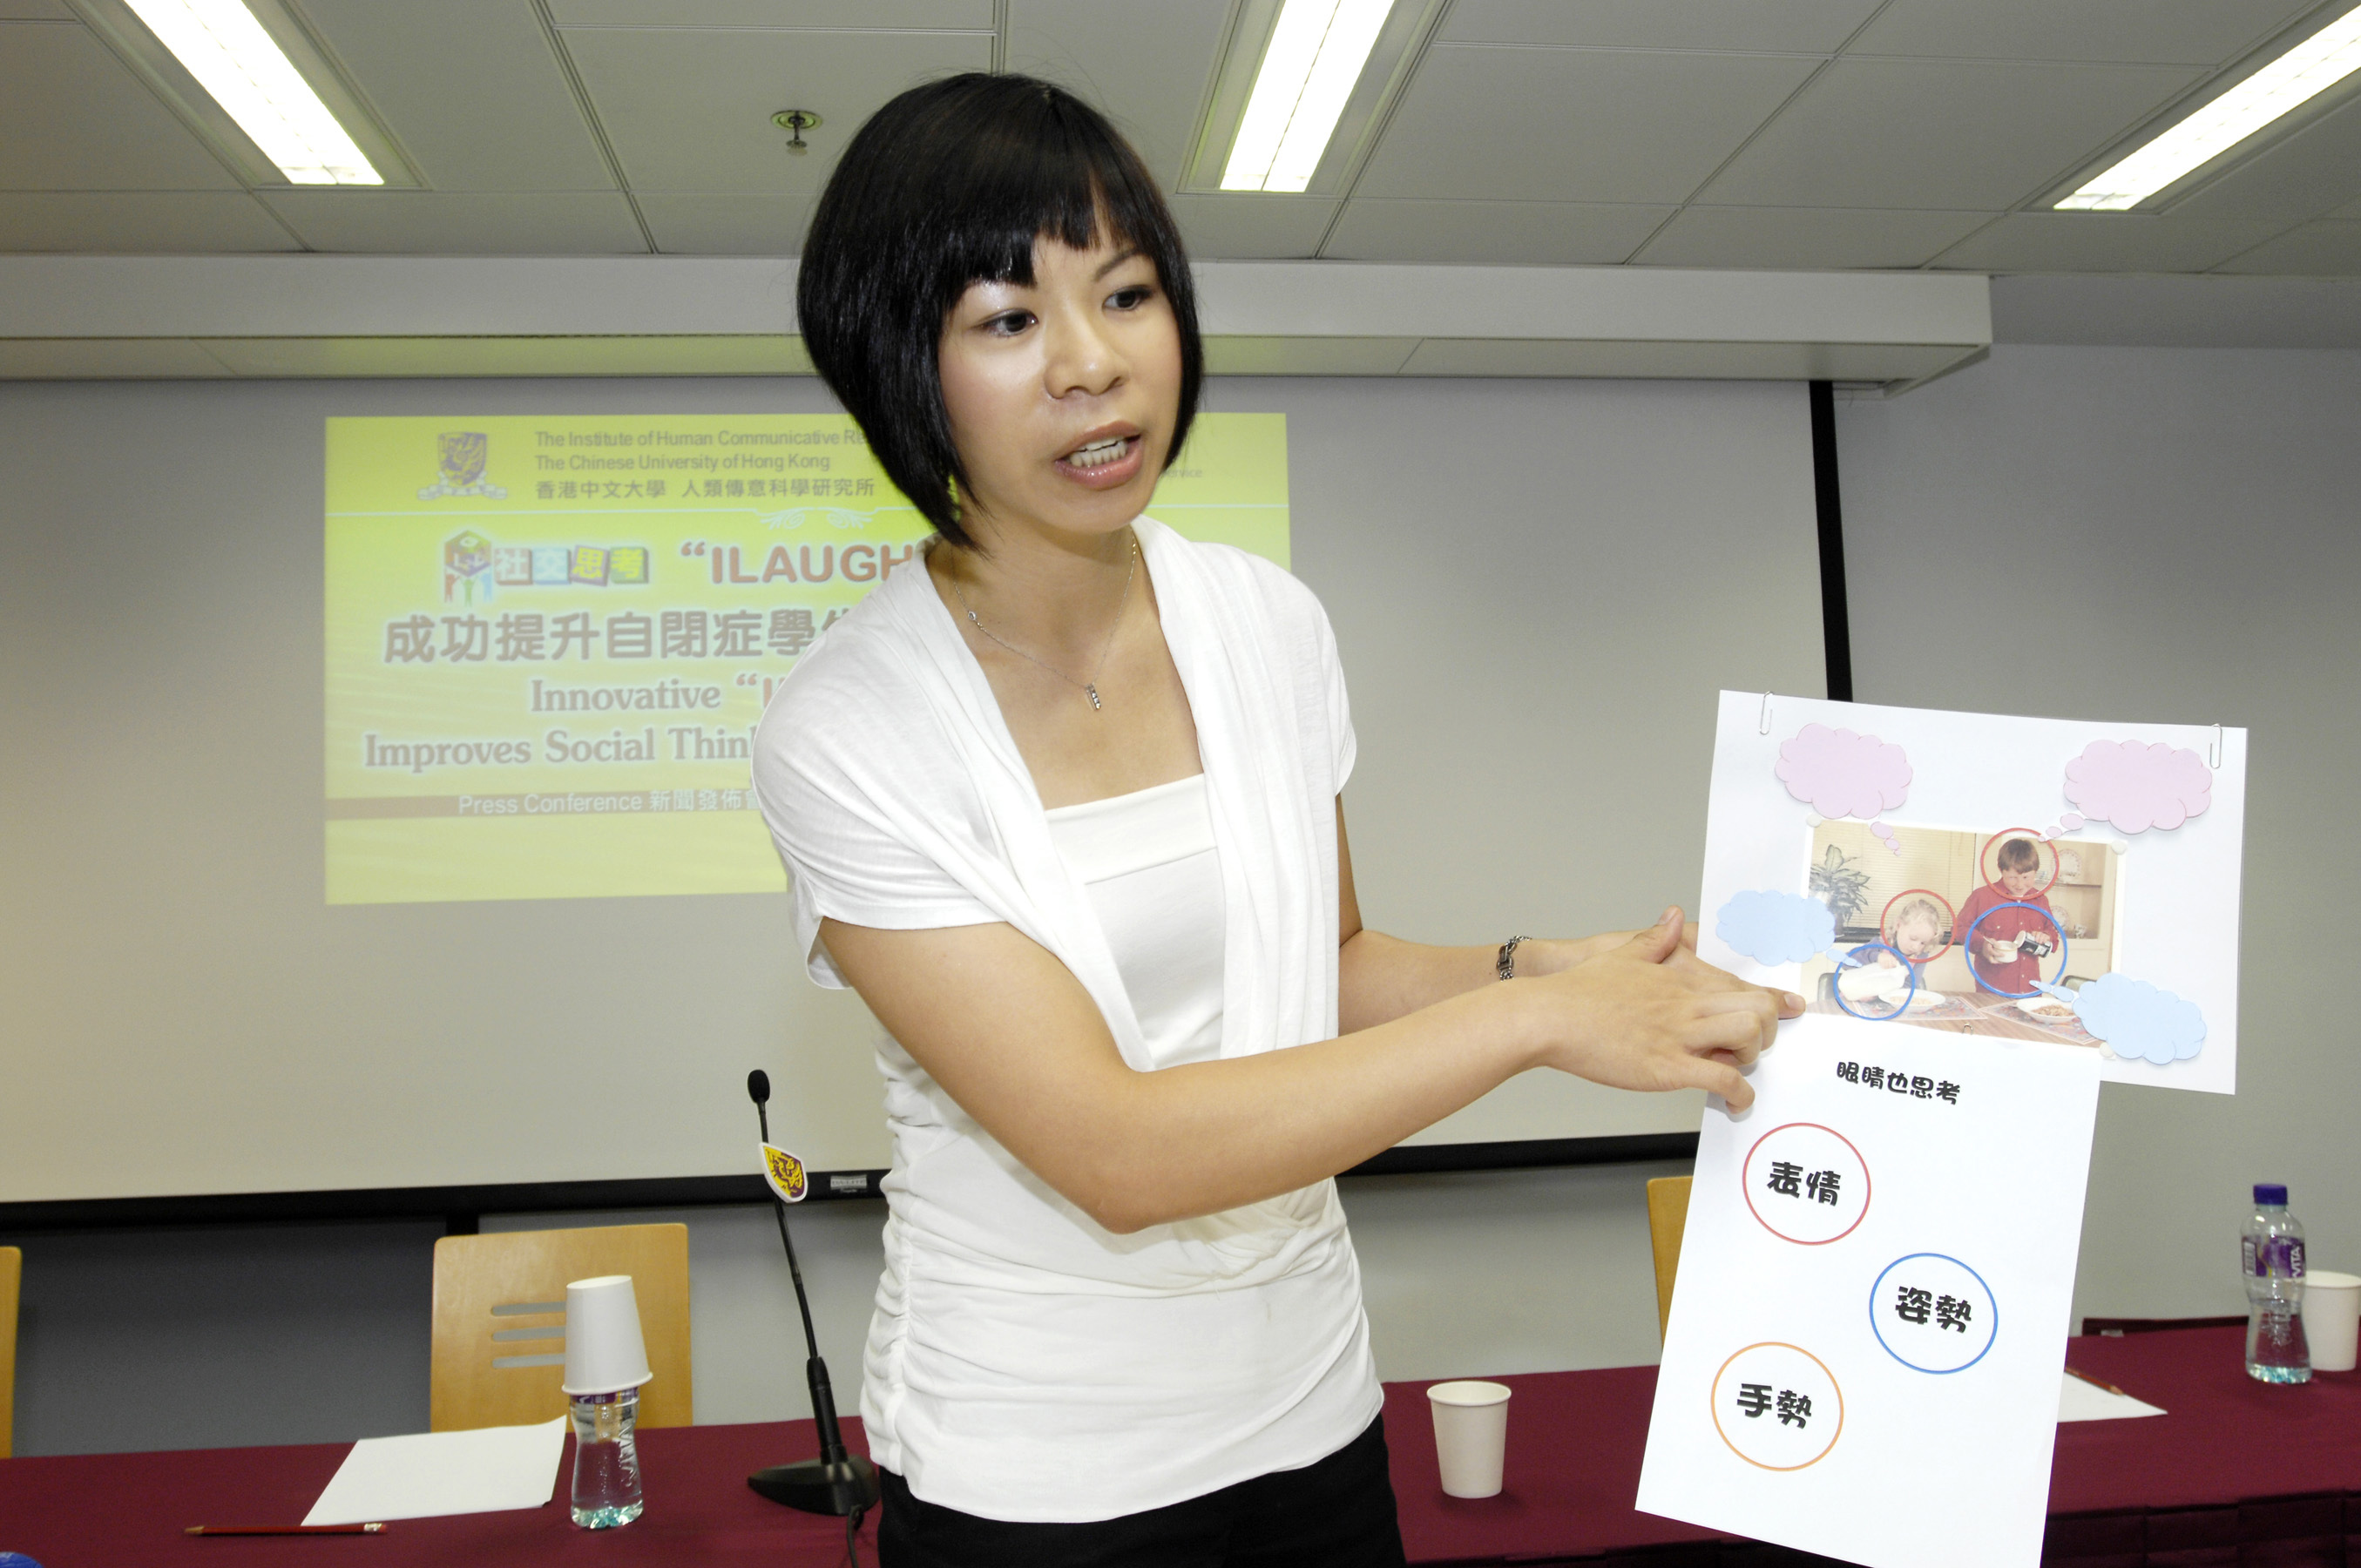 Ms. Aster Lai Yee LUI, Speech Therapist, The Institute of Human Communicative Research shows the introductory pamphlet of ILAUGH Social Thinking.